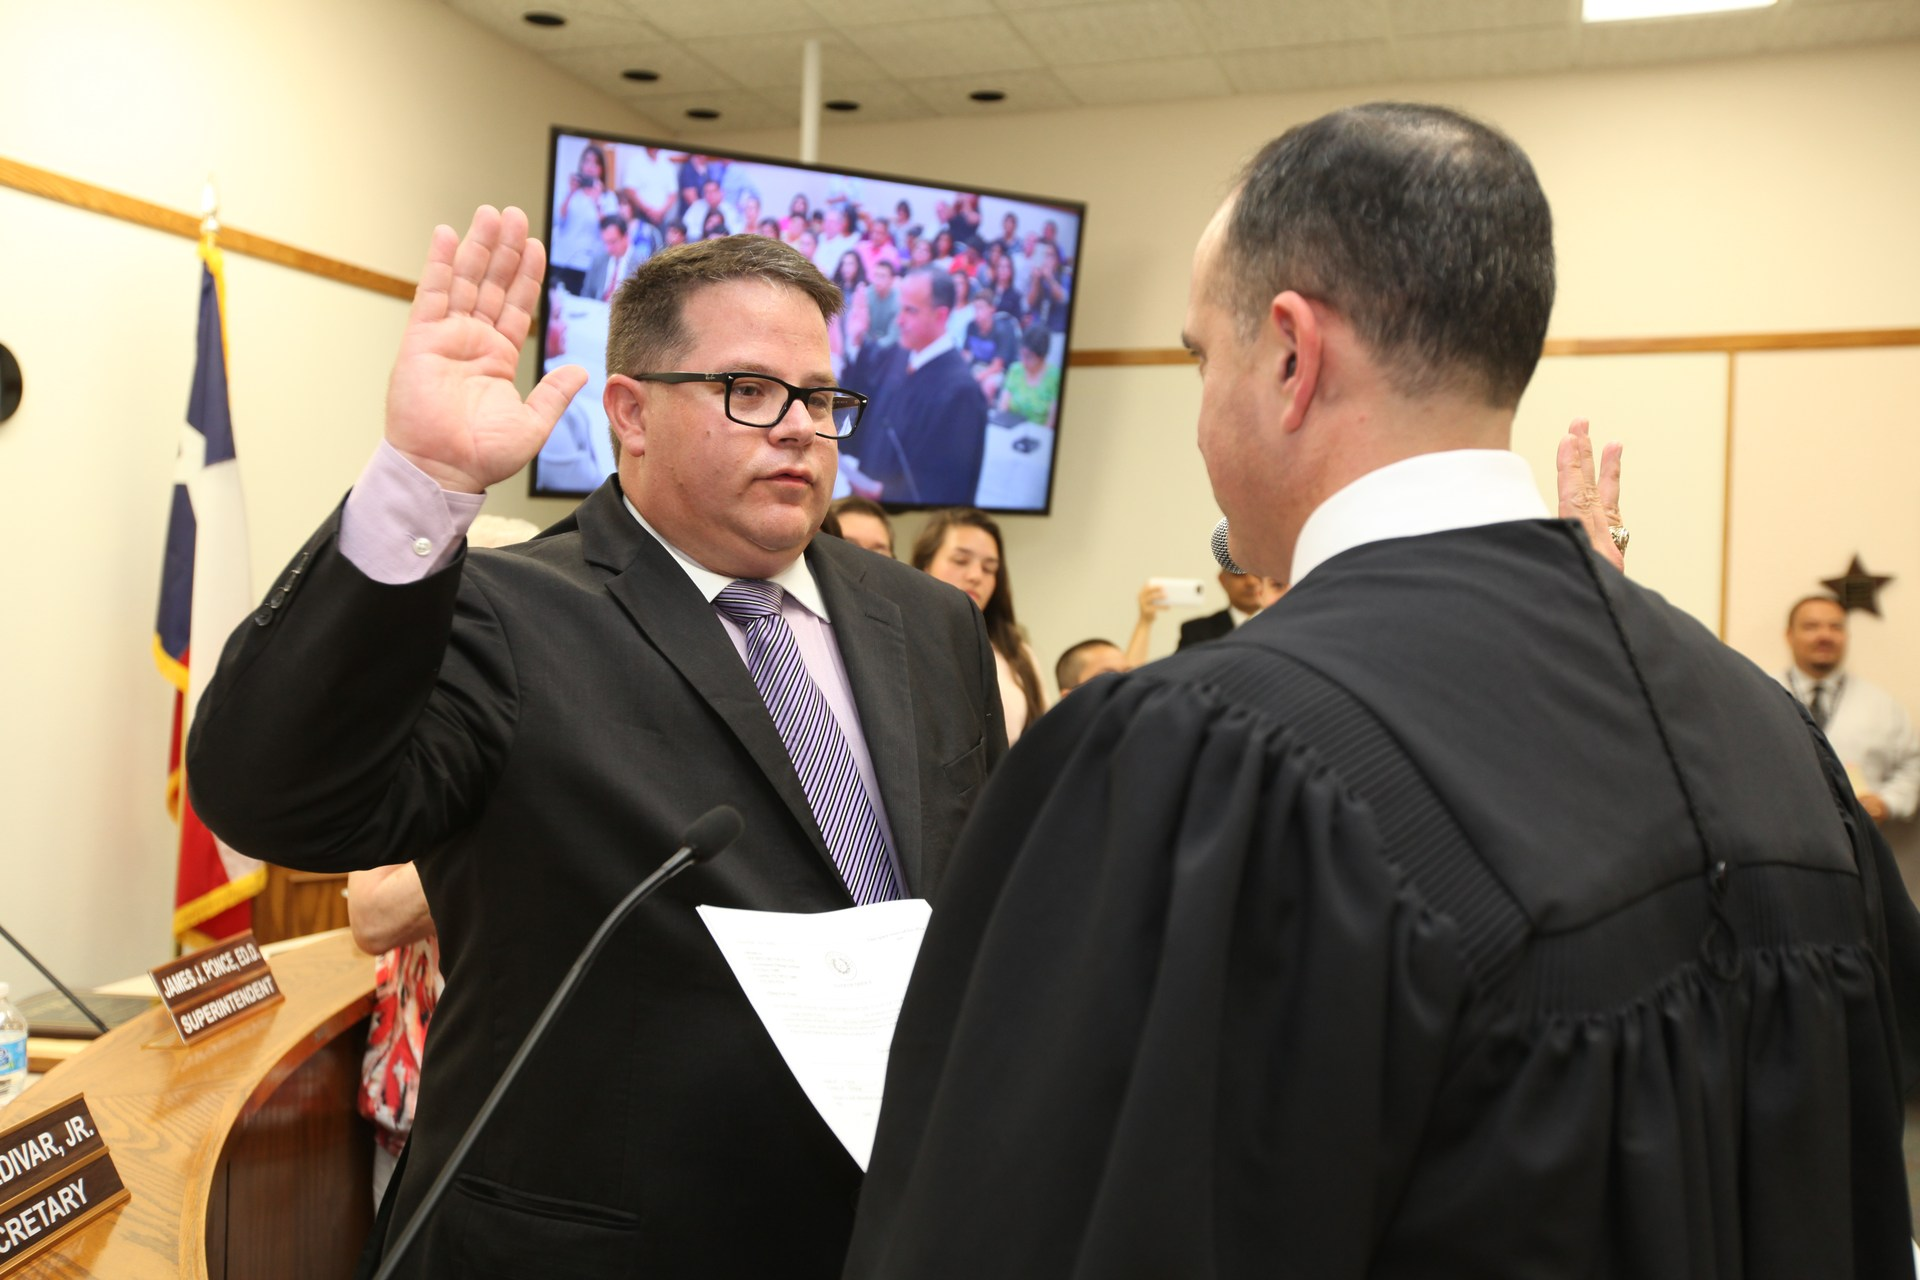 Swearing in of Tony Forina